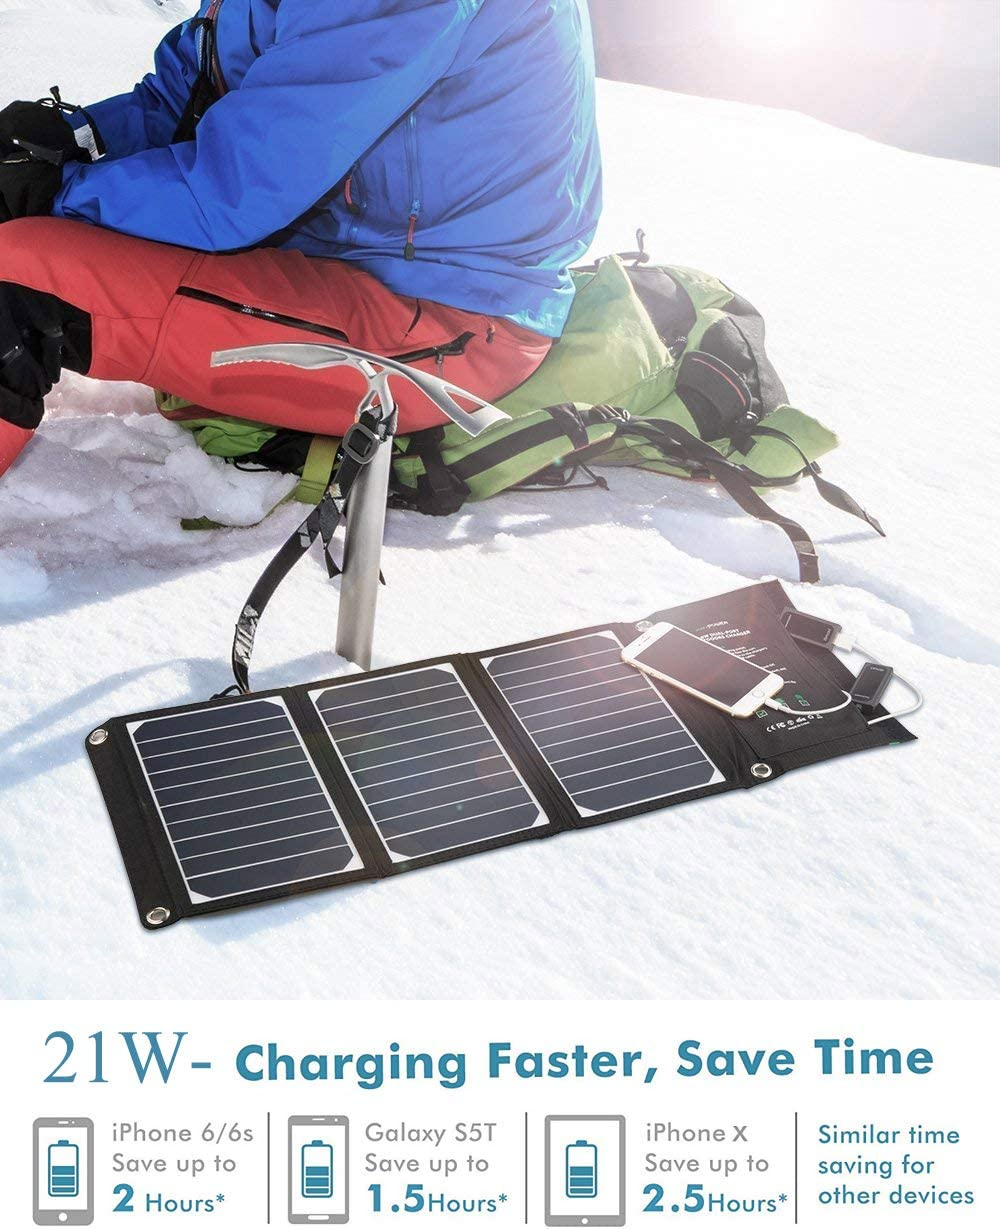 WISSBLUE Solar Panel Charger 21W//60W Dual USB 4.2A Fast Solar Charger Portable Camping Travel Charger,Hiking,Hurricane for All 5V Devices iPhone iPad Samsung Kindle etc. Emergency Backup